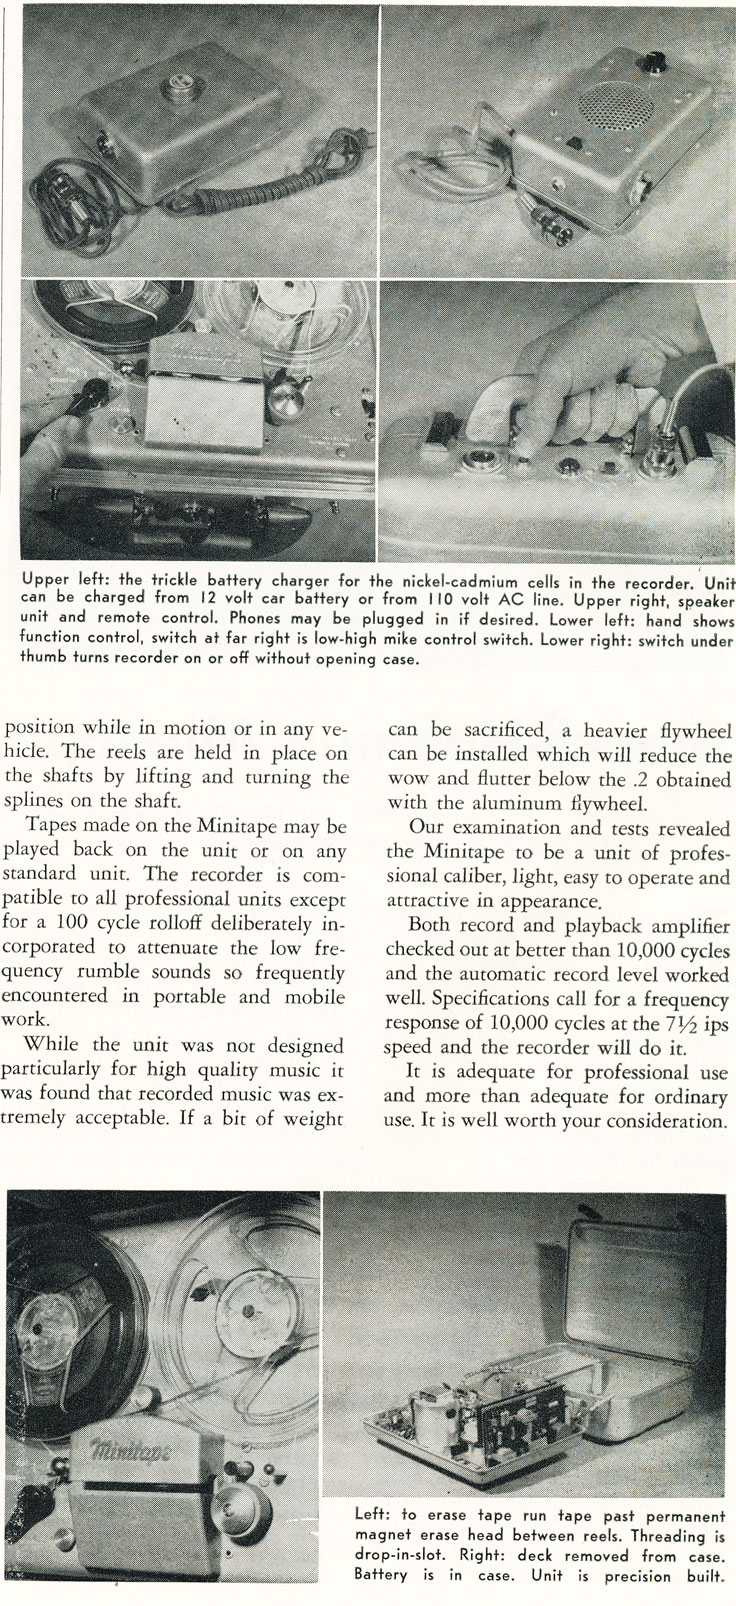 Part 2 of the 1958 review of the Stancil-Hoffman Minitape reel to reel tape recorder in Reel2ReelTexas.com's vintage recording collection